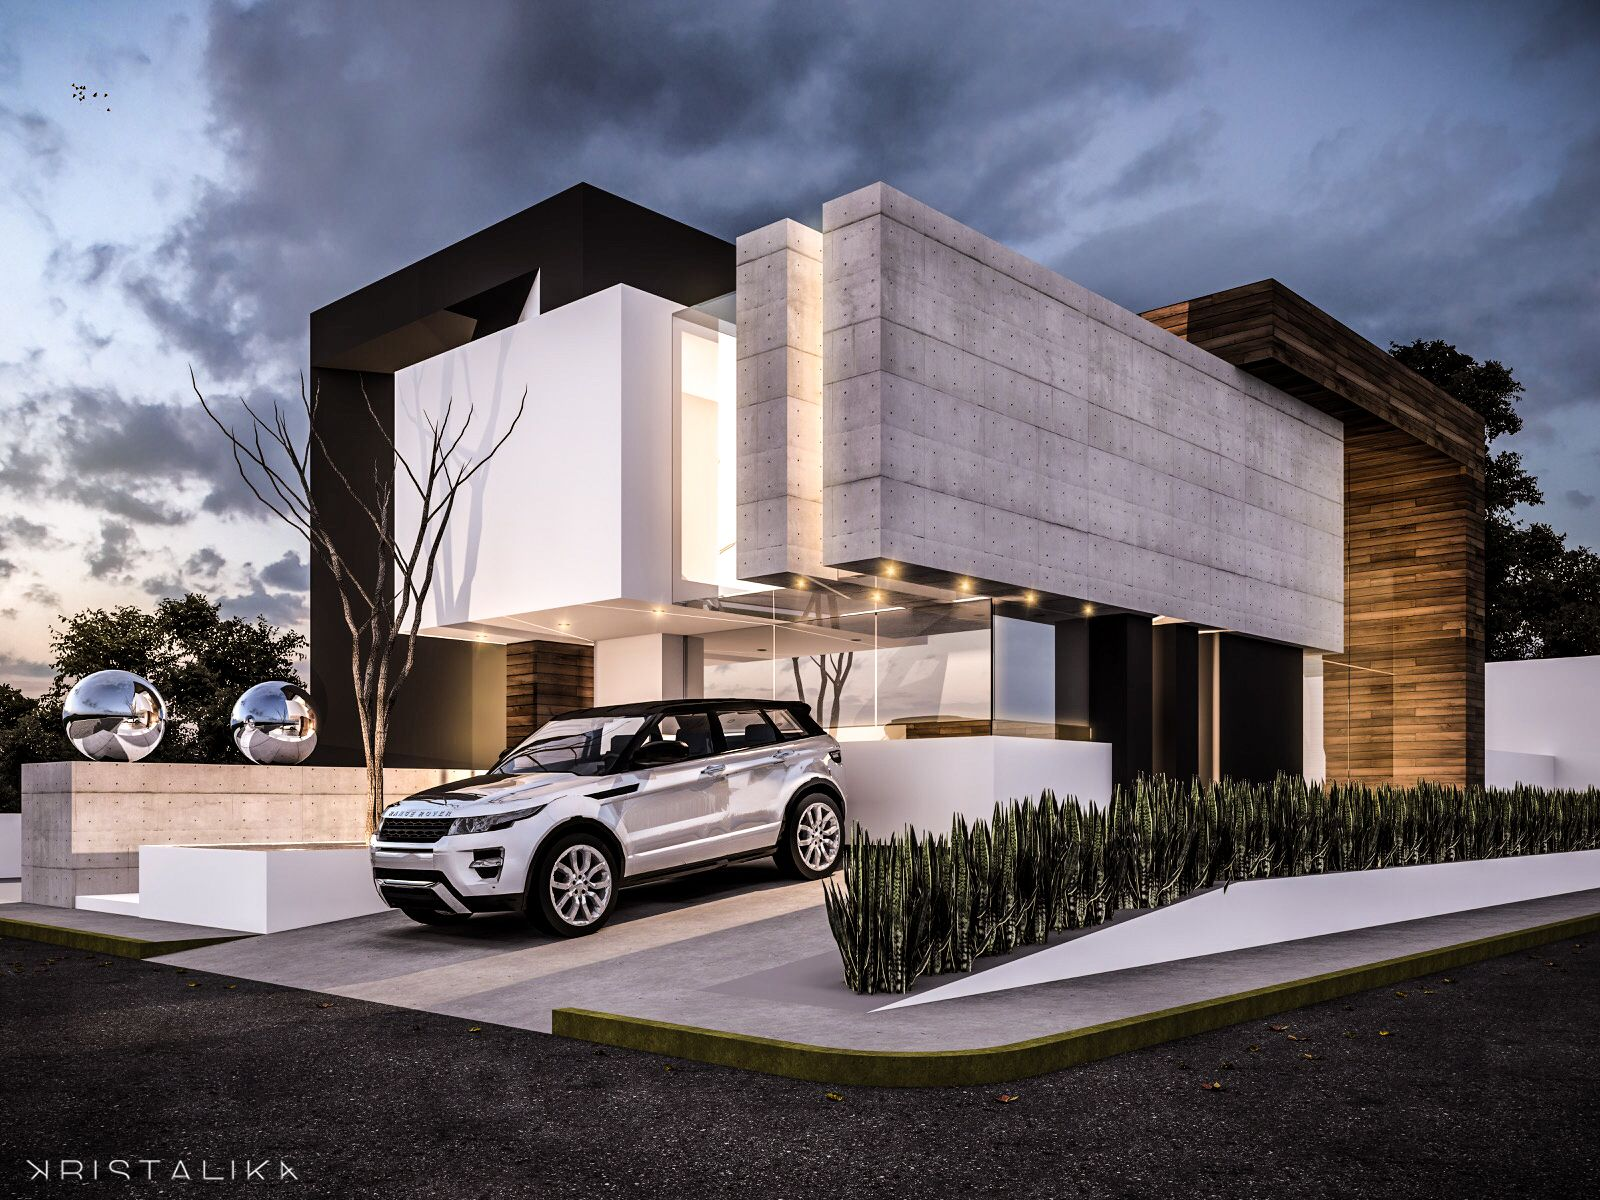 Beam house architecture modern facade contemporary for Design house architecture hamilton